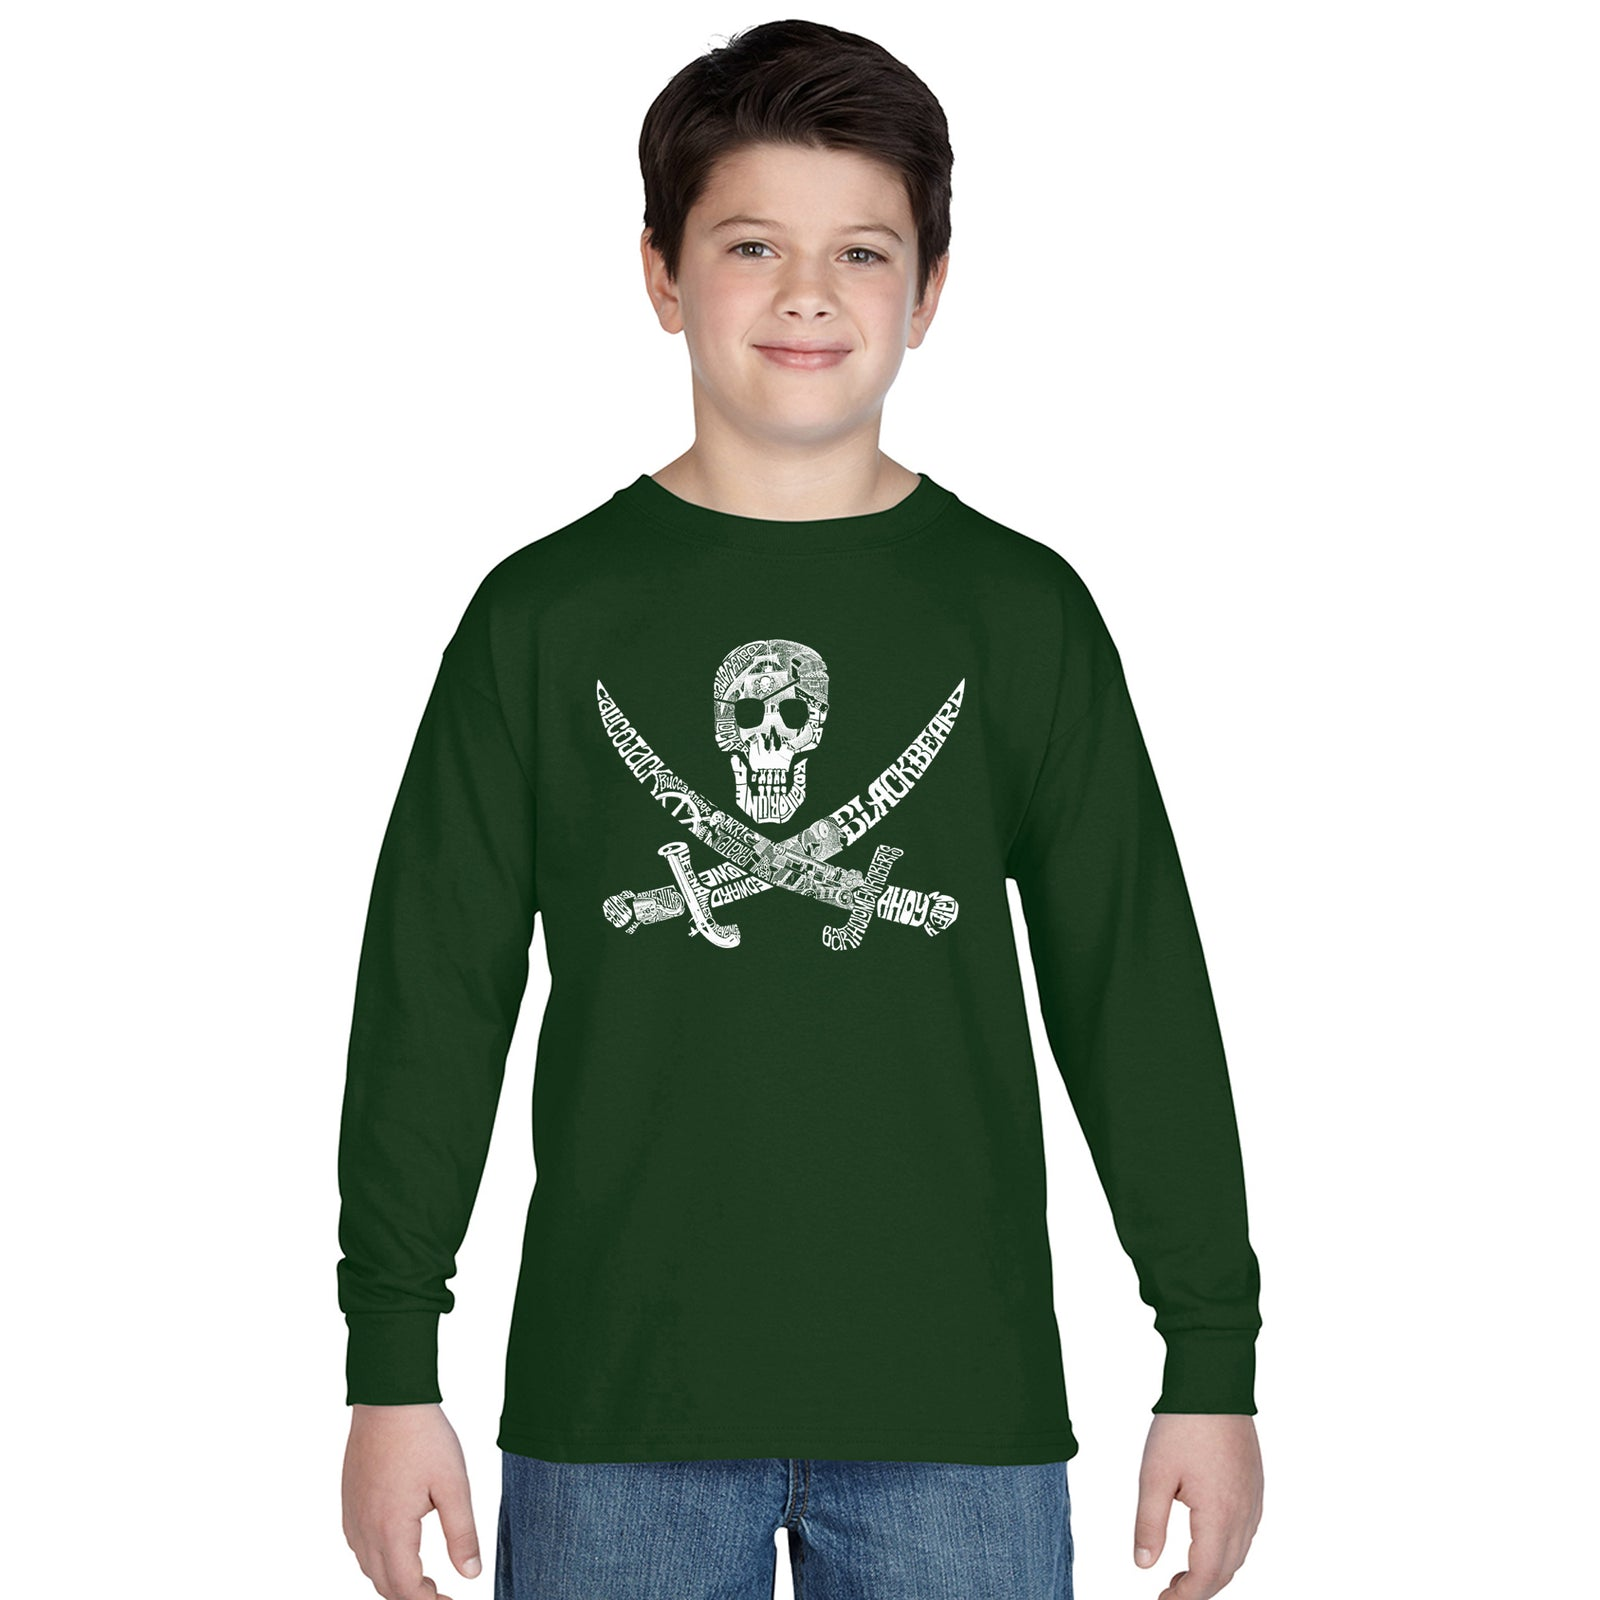 Boy's Long Sleeve - PIRATE CAPTAINS, SHIPS AND IMAGERY